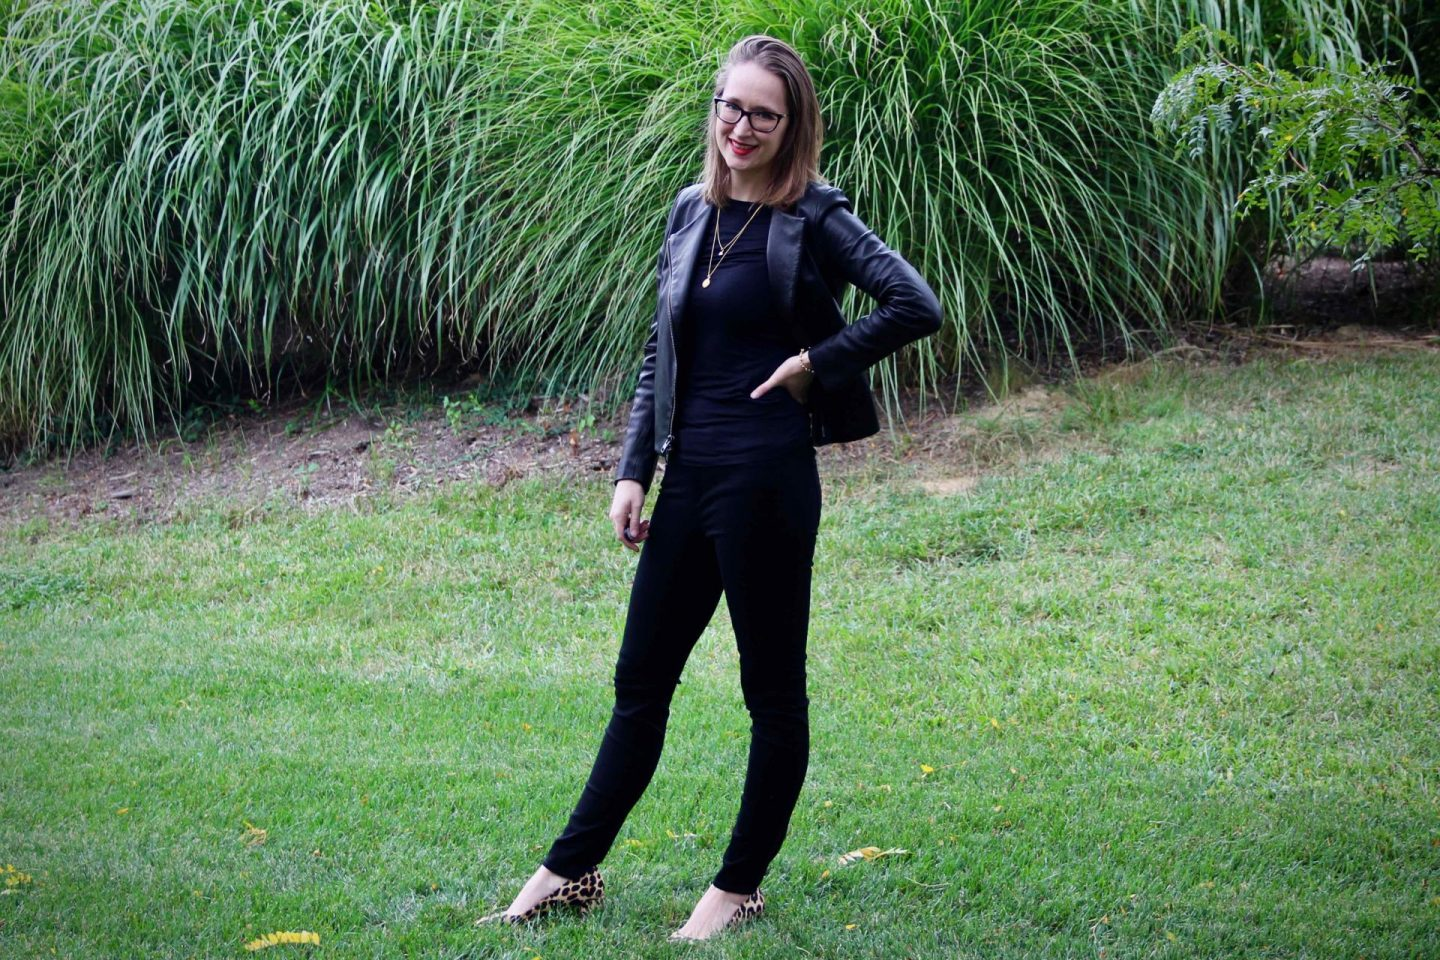 All Black Leather Fall Style with Leopard Shoes | The Spectacular Adventurer